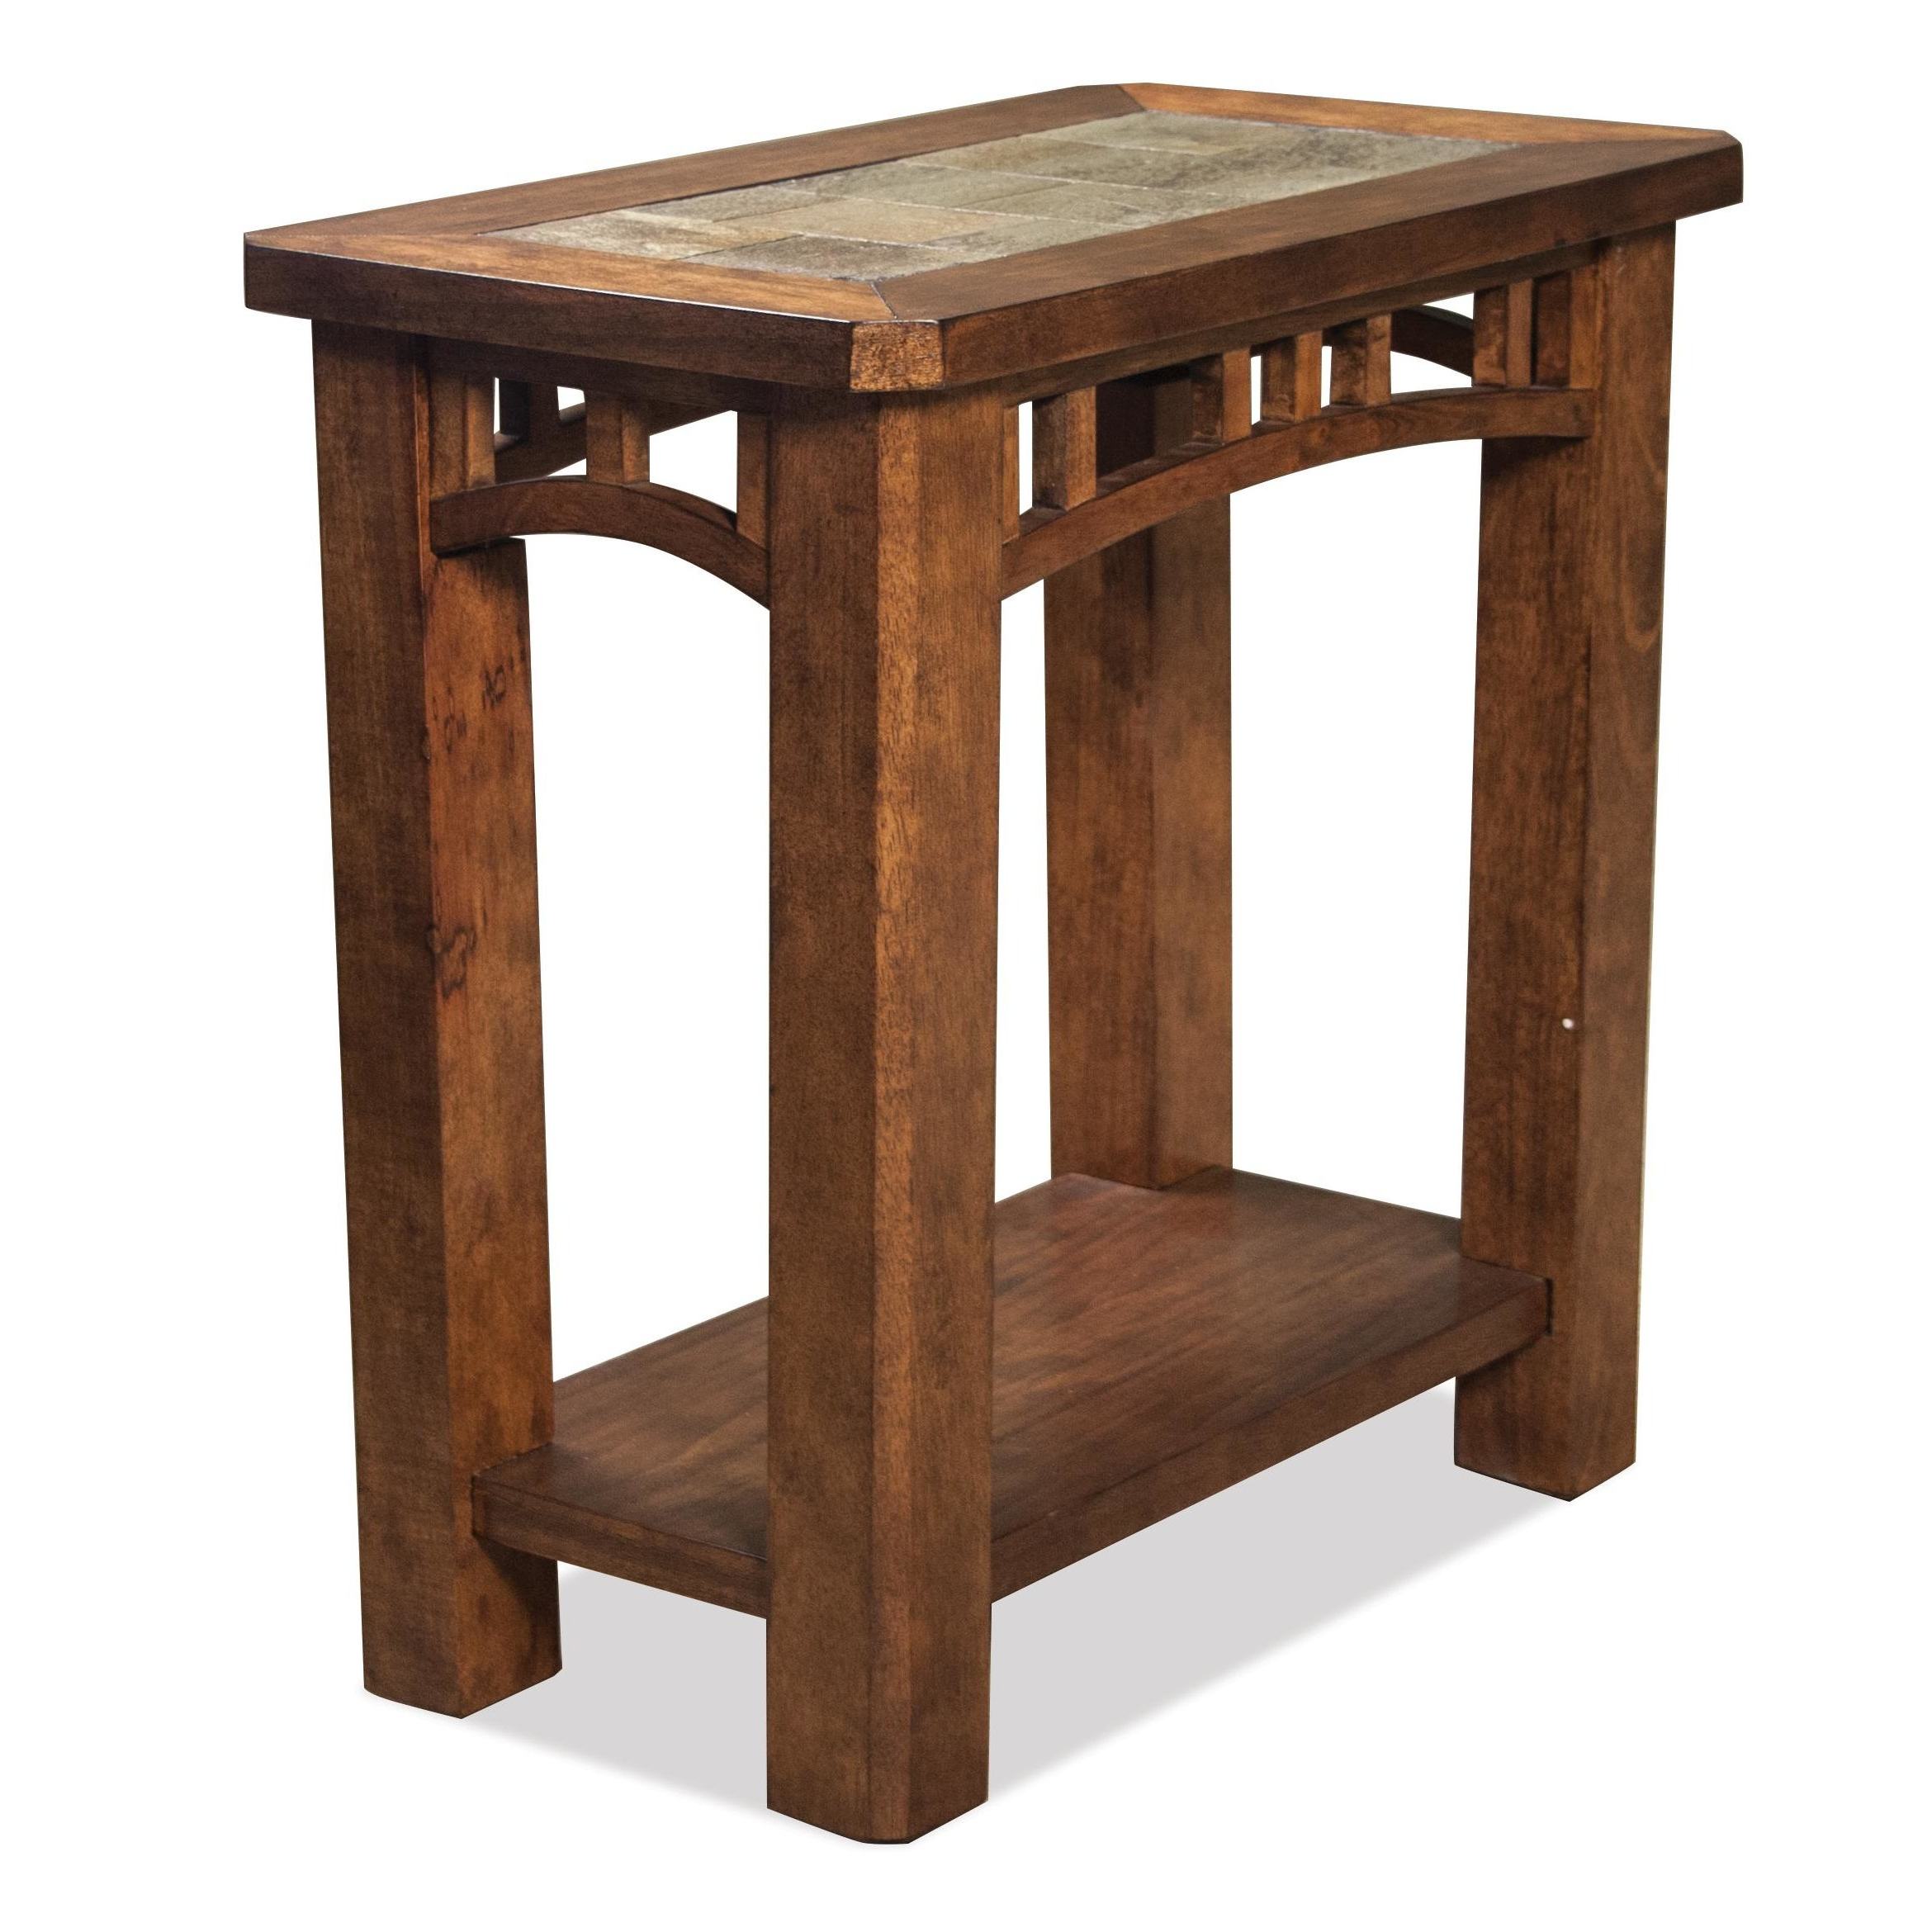 Stone End & Side Tables You'll Love | Wayfair With Regard To Layered Wood Small Square Console Tables (View 17 of 20)